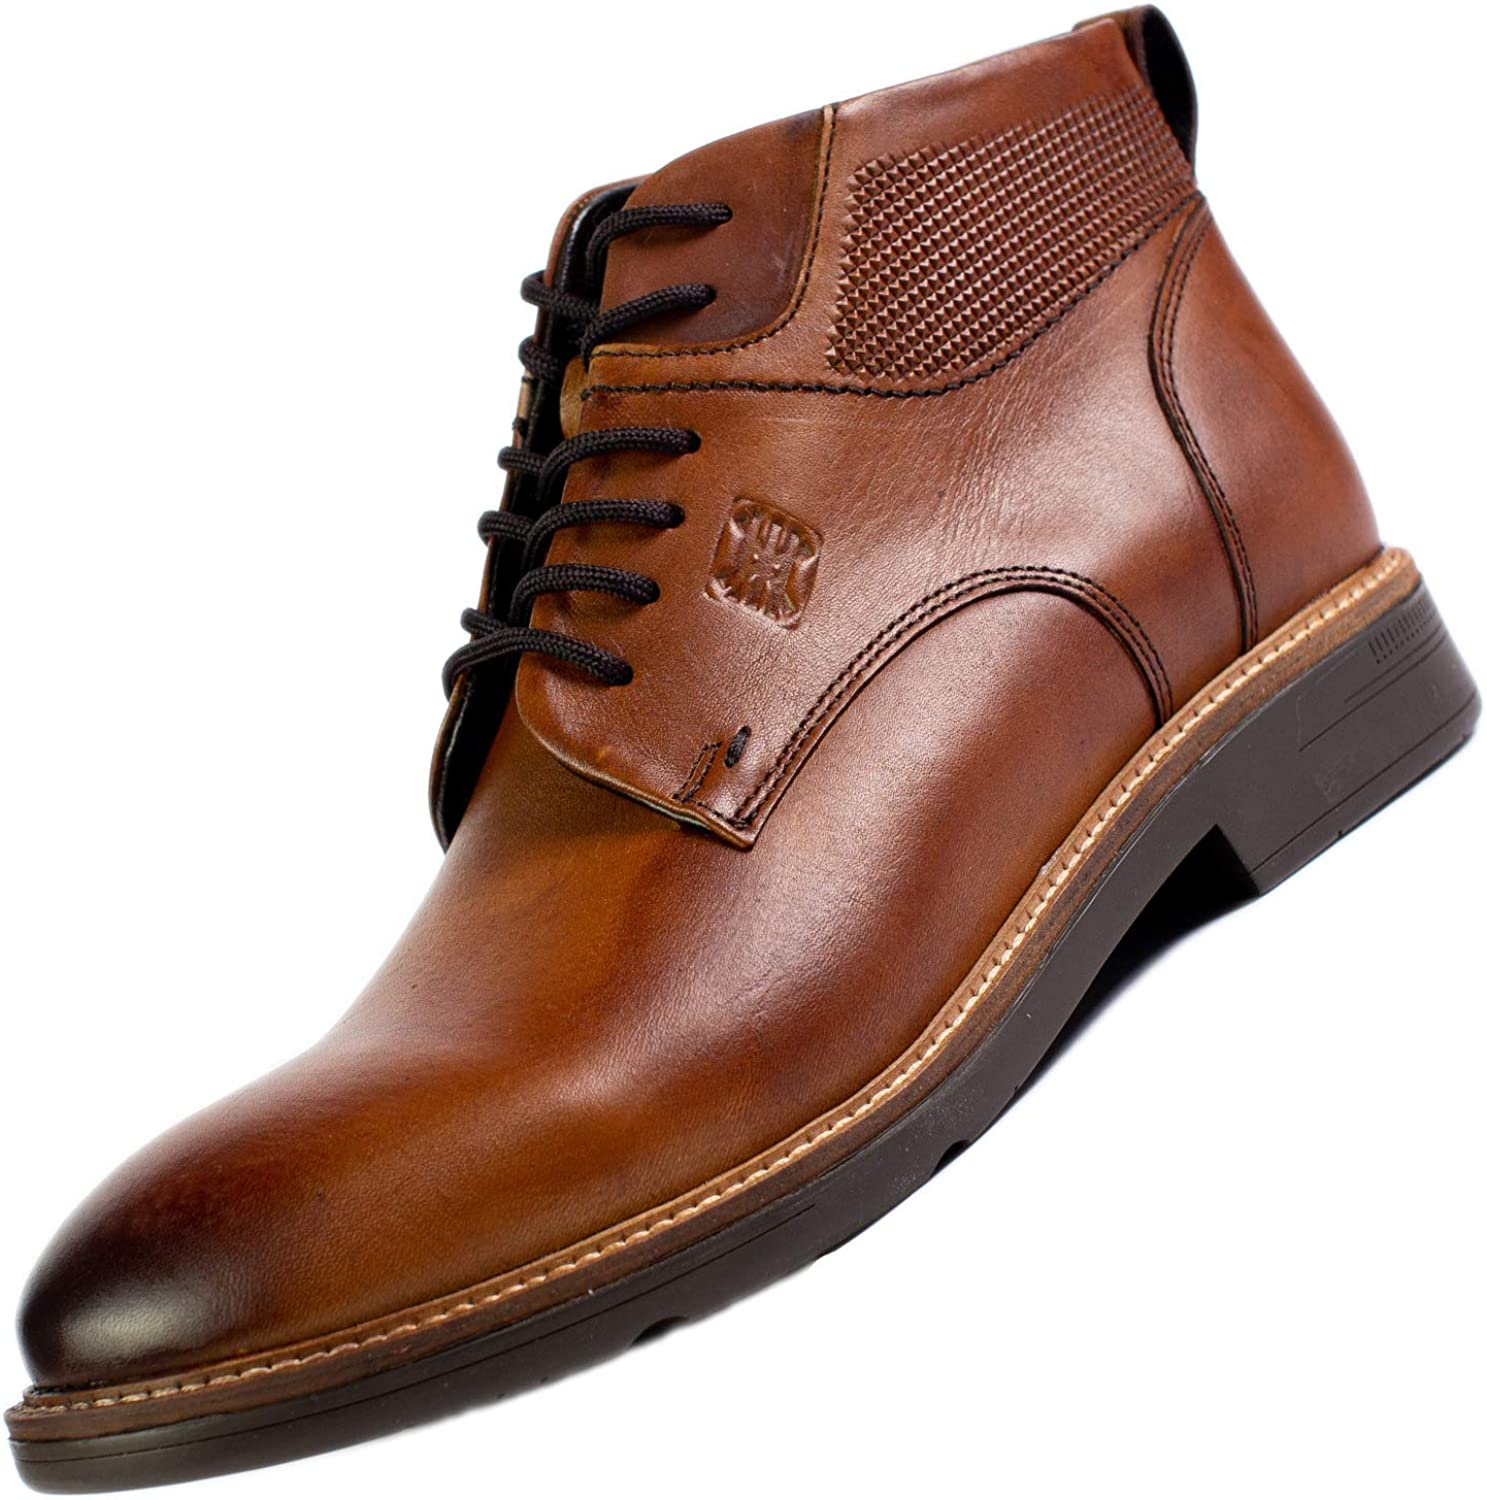 Amazon.com | SABATTER Mens Chukka Boots Taupe - Lace-Up Oxford Style  Genuine Leather Rounded Toe for Business or Casual with Built in Double  Flexion System Sole and Thermoconformed Memory Foam Insole -